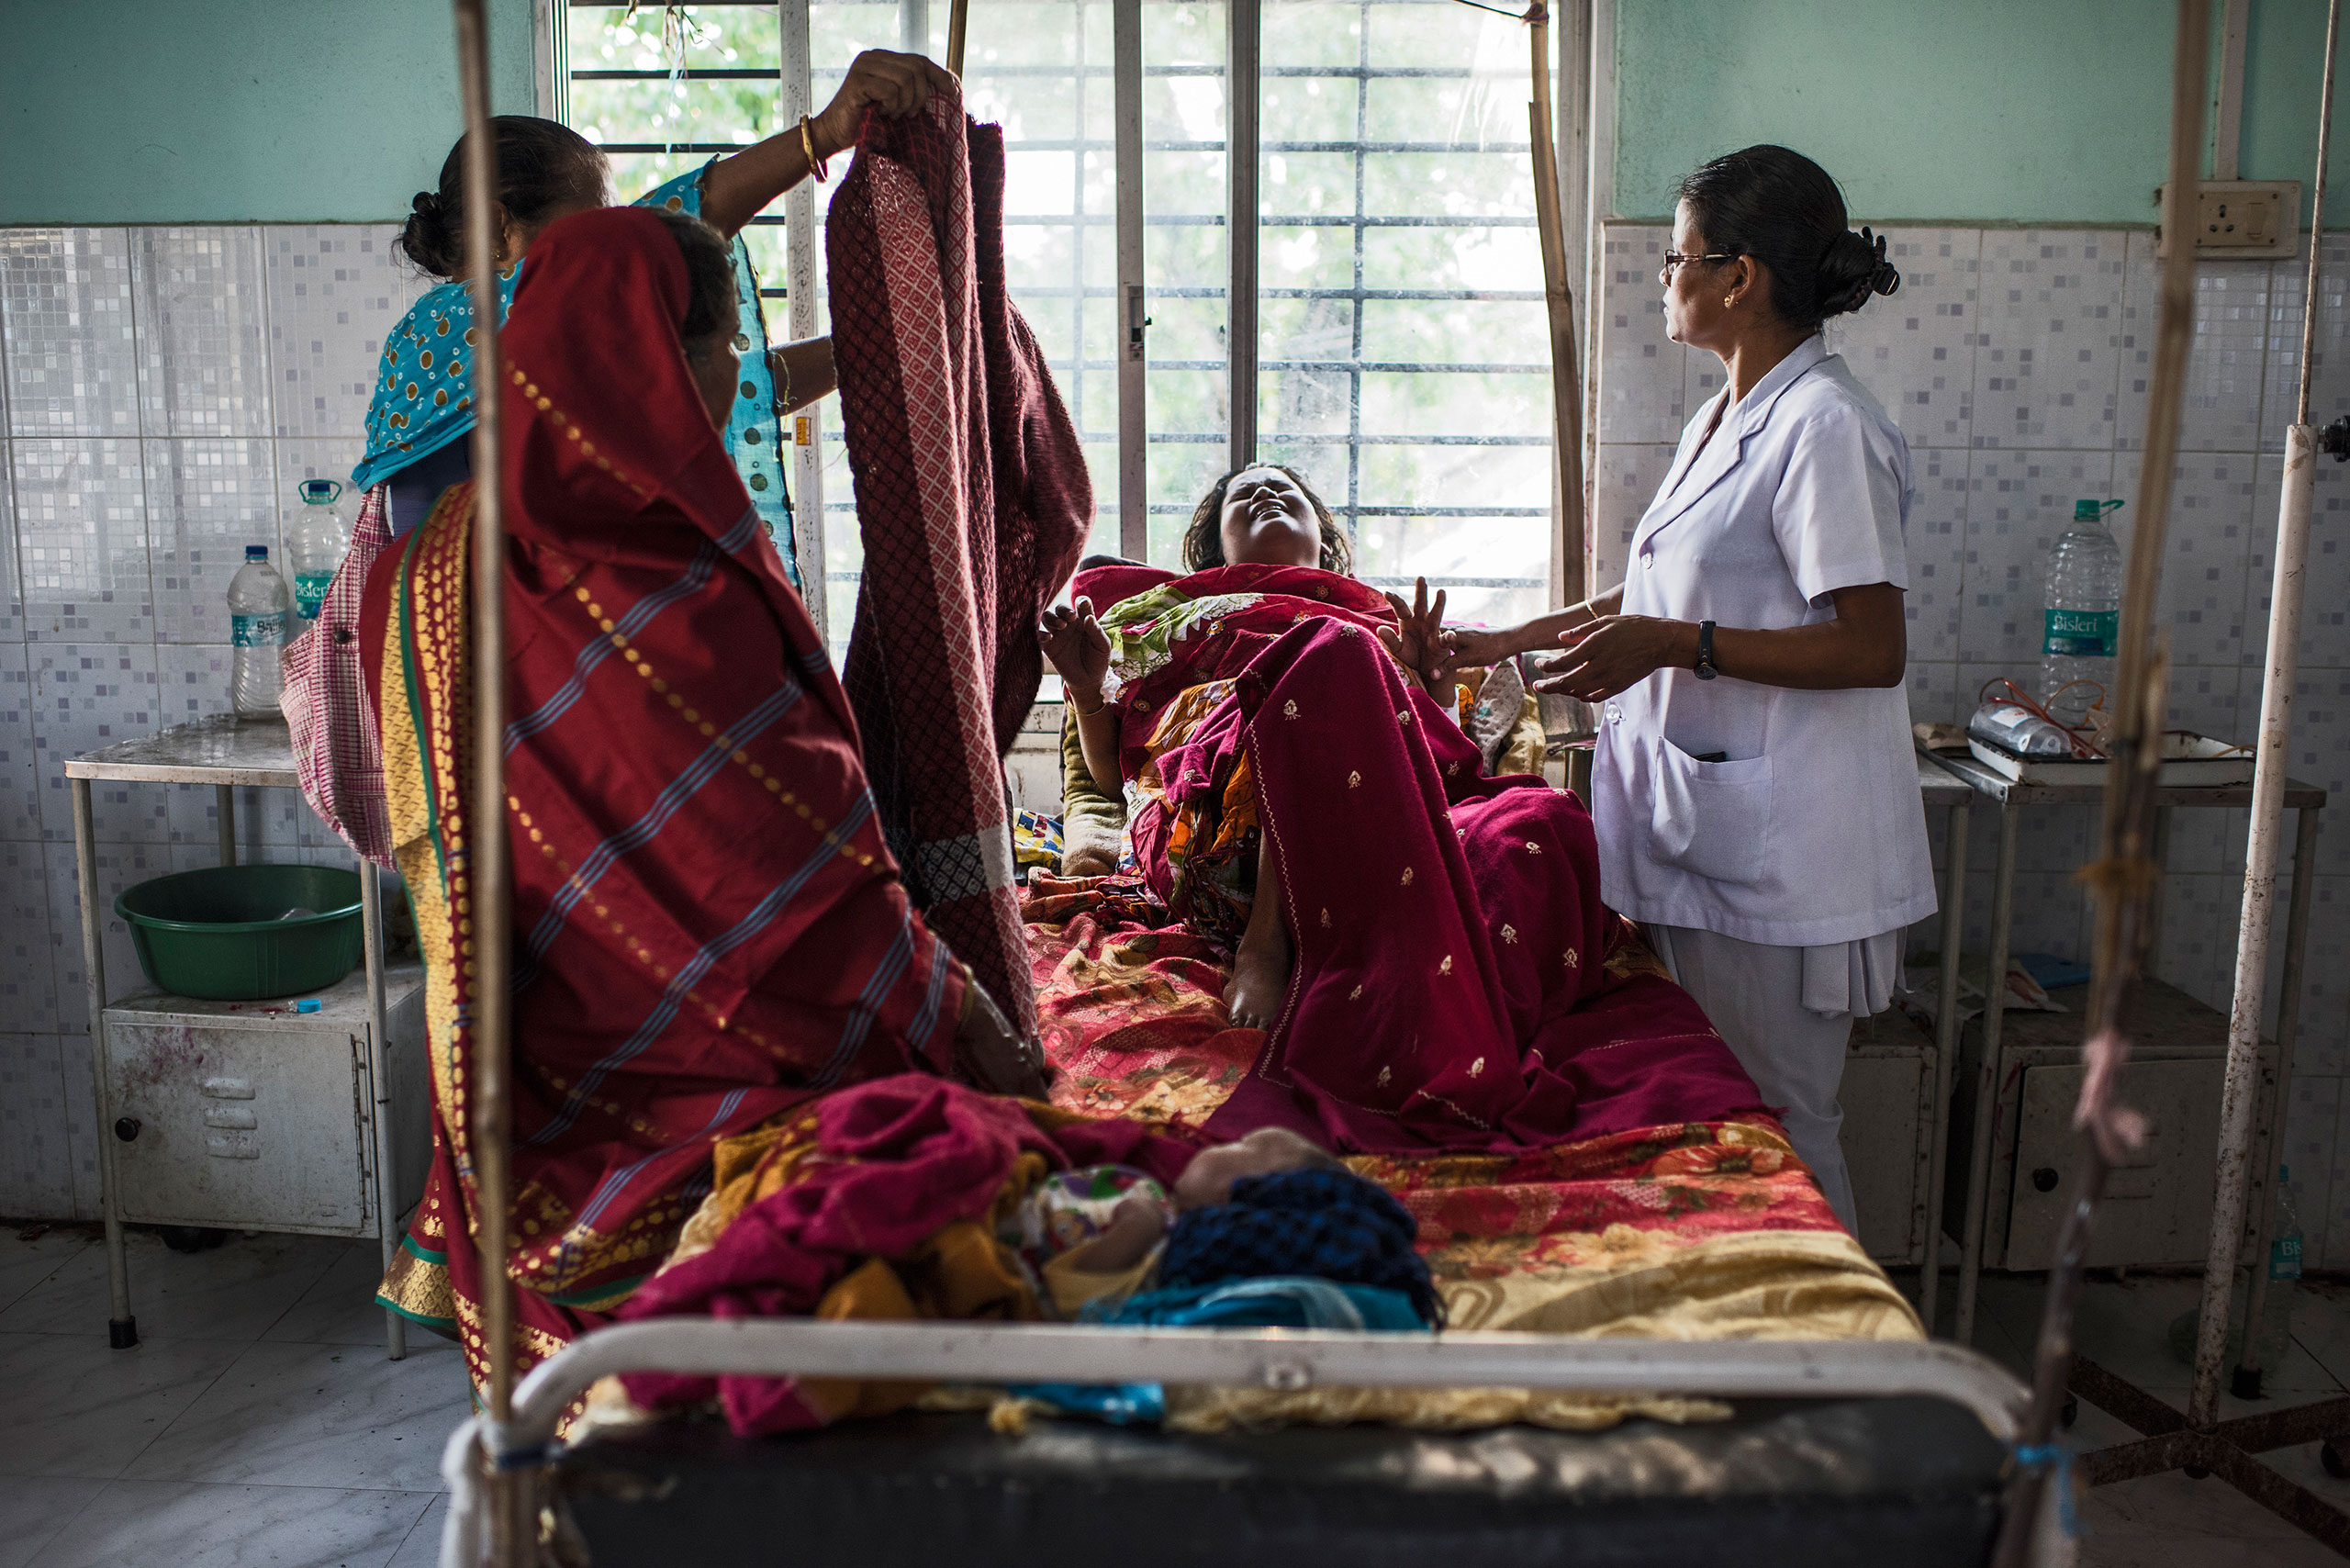 Nazreen Khatoon winces in pain as she lies gravely ill, suffering from severe postpartum anemia at the Tezpur Civil Hospital in Tezpur, Assam, India. April 2015. From  Where Childbirth Can Mean Death